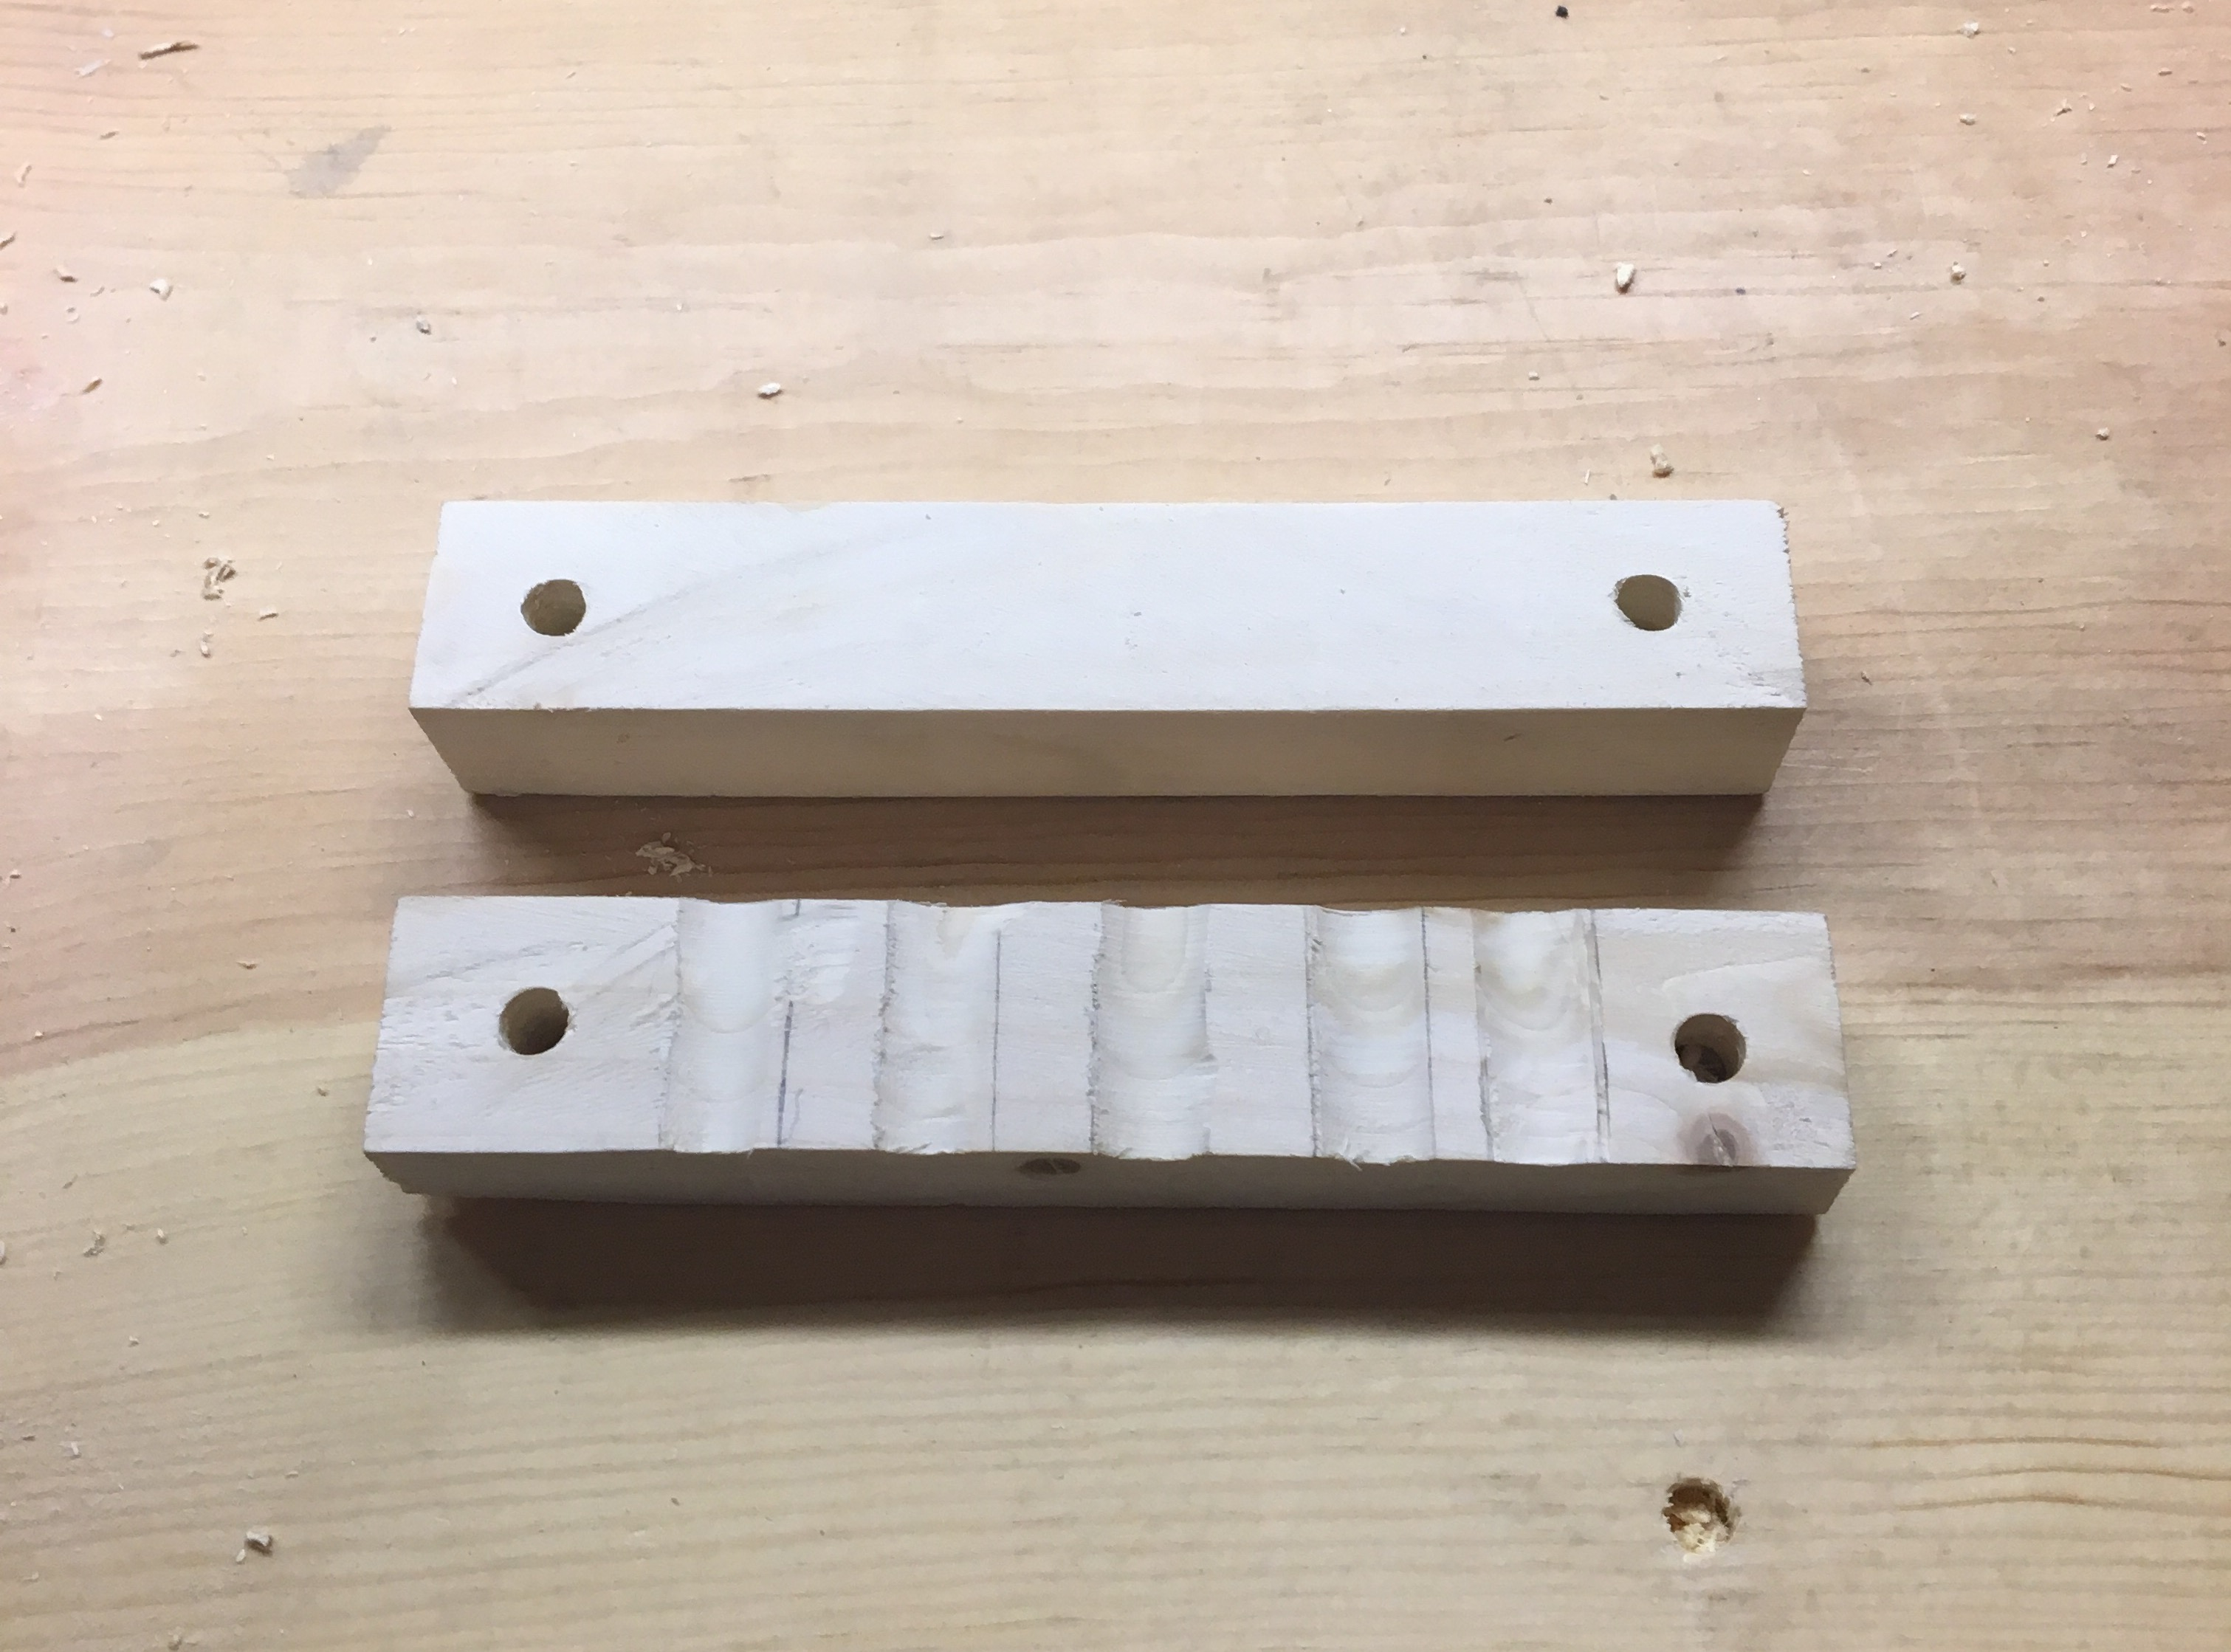 Picture of Get the Wood Pieces Ready to Hold the Popsicle Sticks on Your Kalimba.